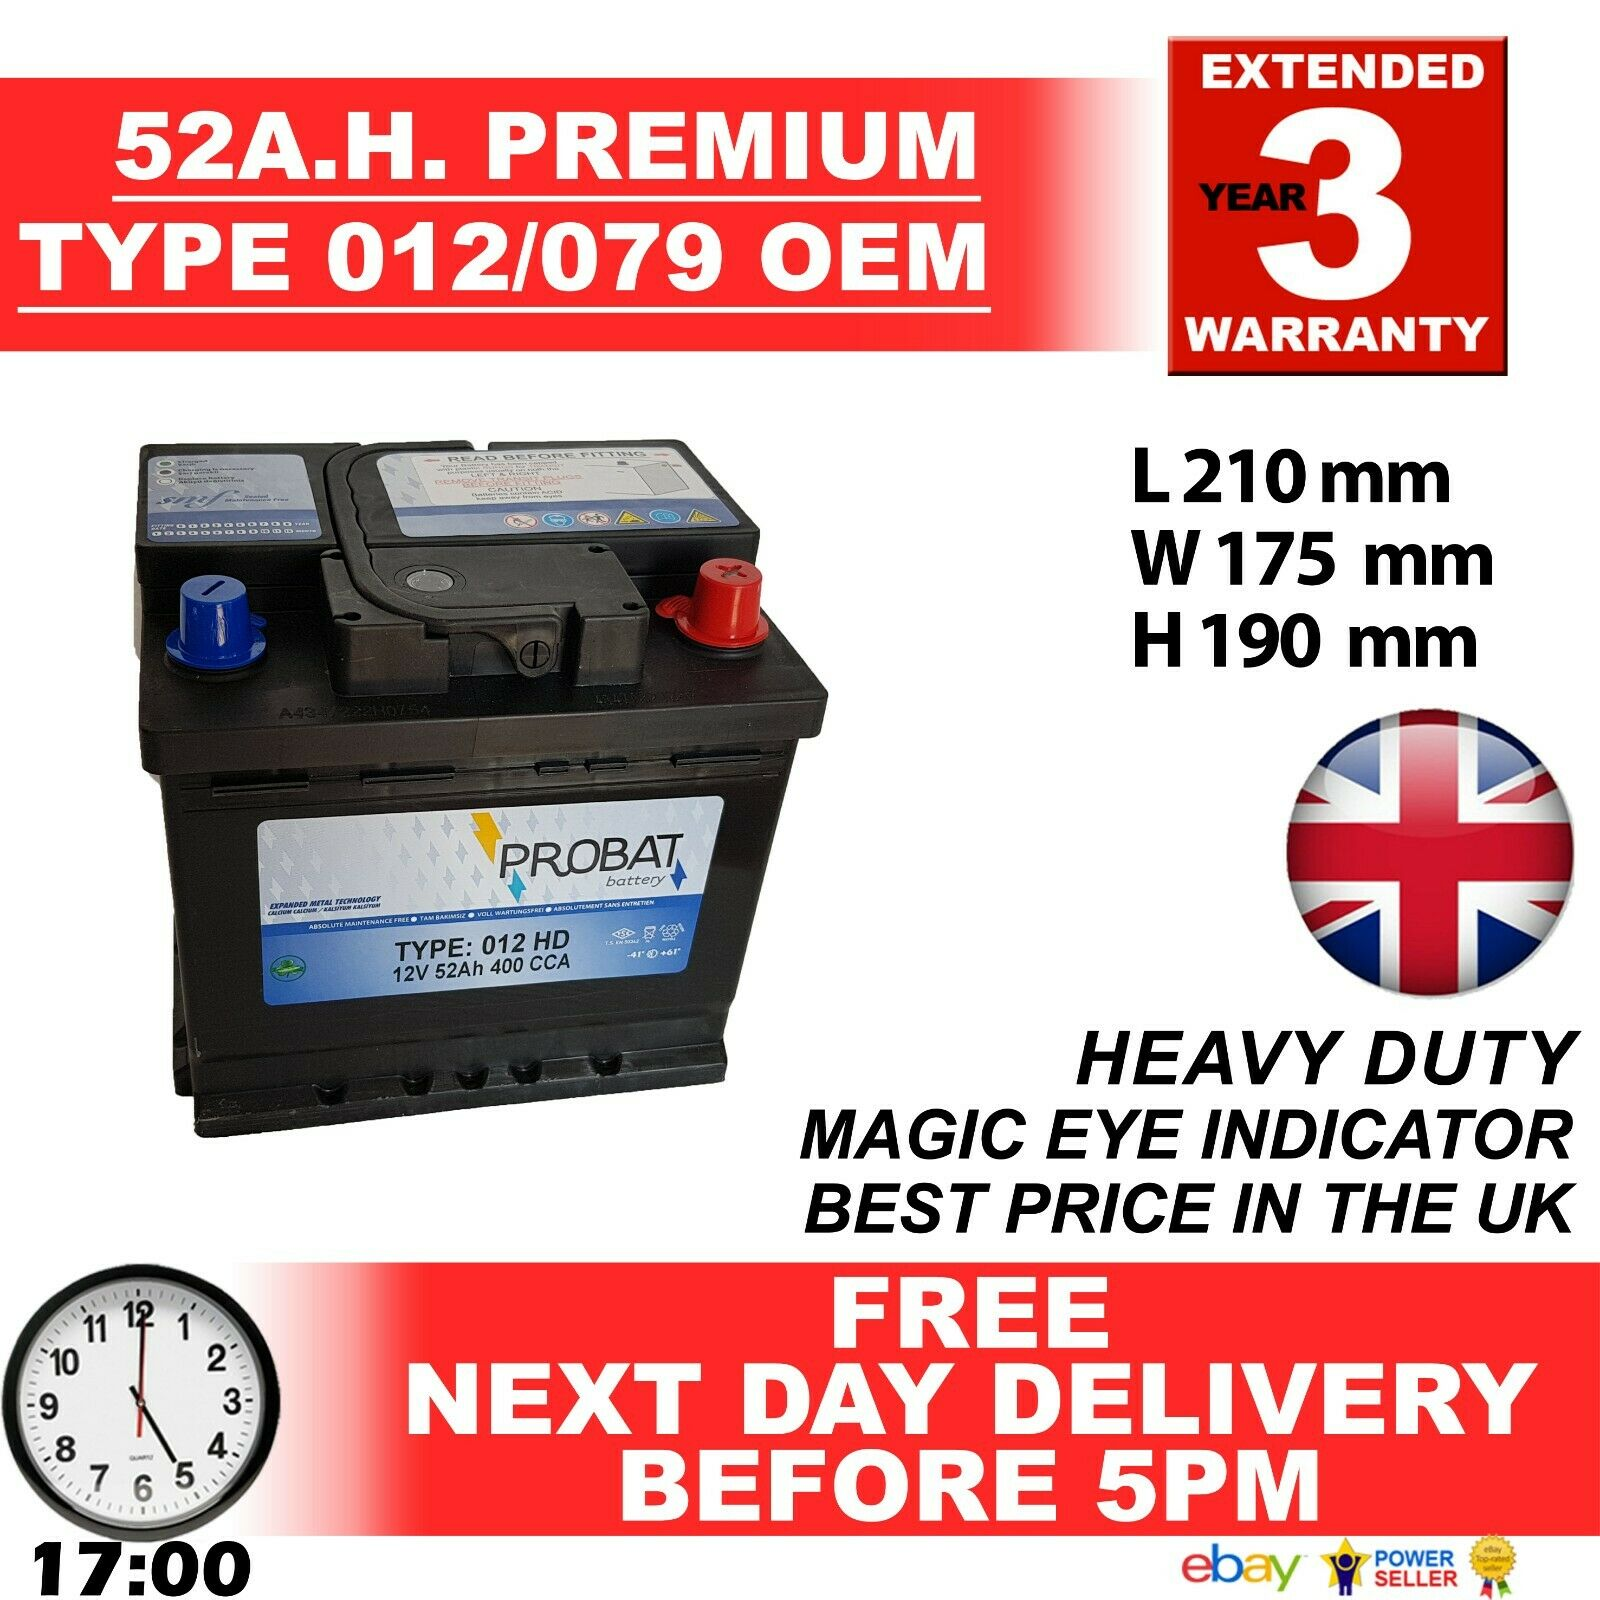 Car Parts - 012 CAR BATTERY O.E.M. QUALITY 12V EXTRA HEAVY DUTY100% MAINTENANCE FREE 24HRDEL